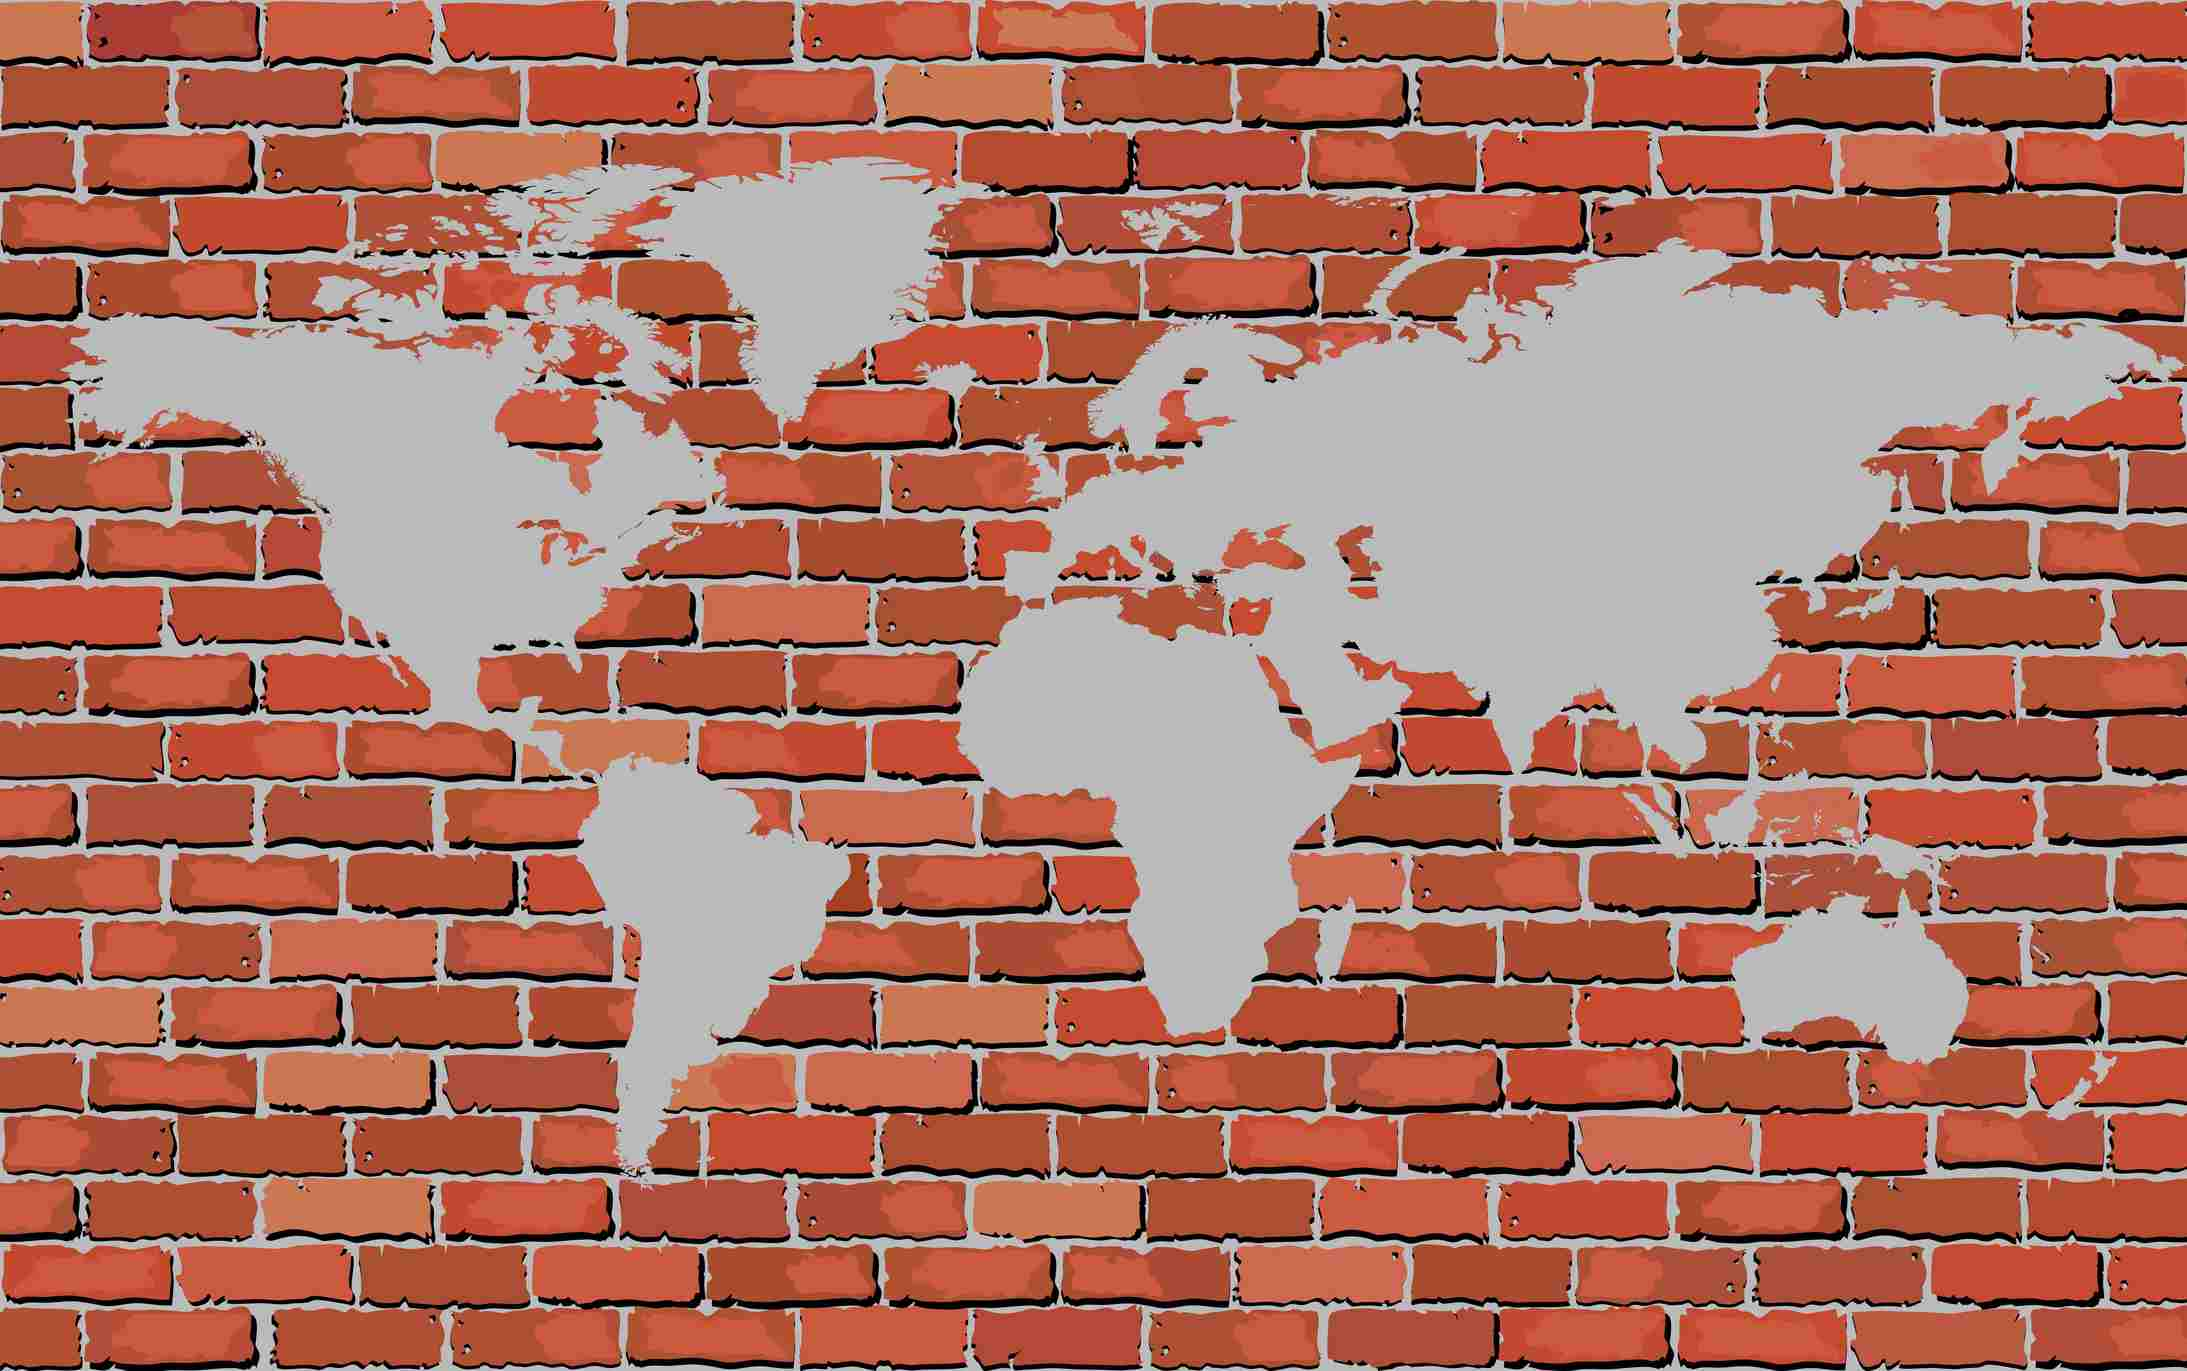 A brick wall with a map of the world